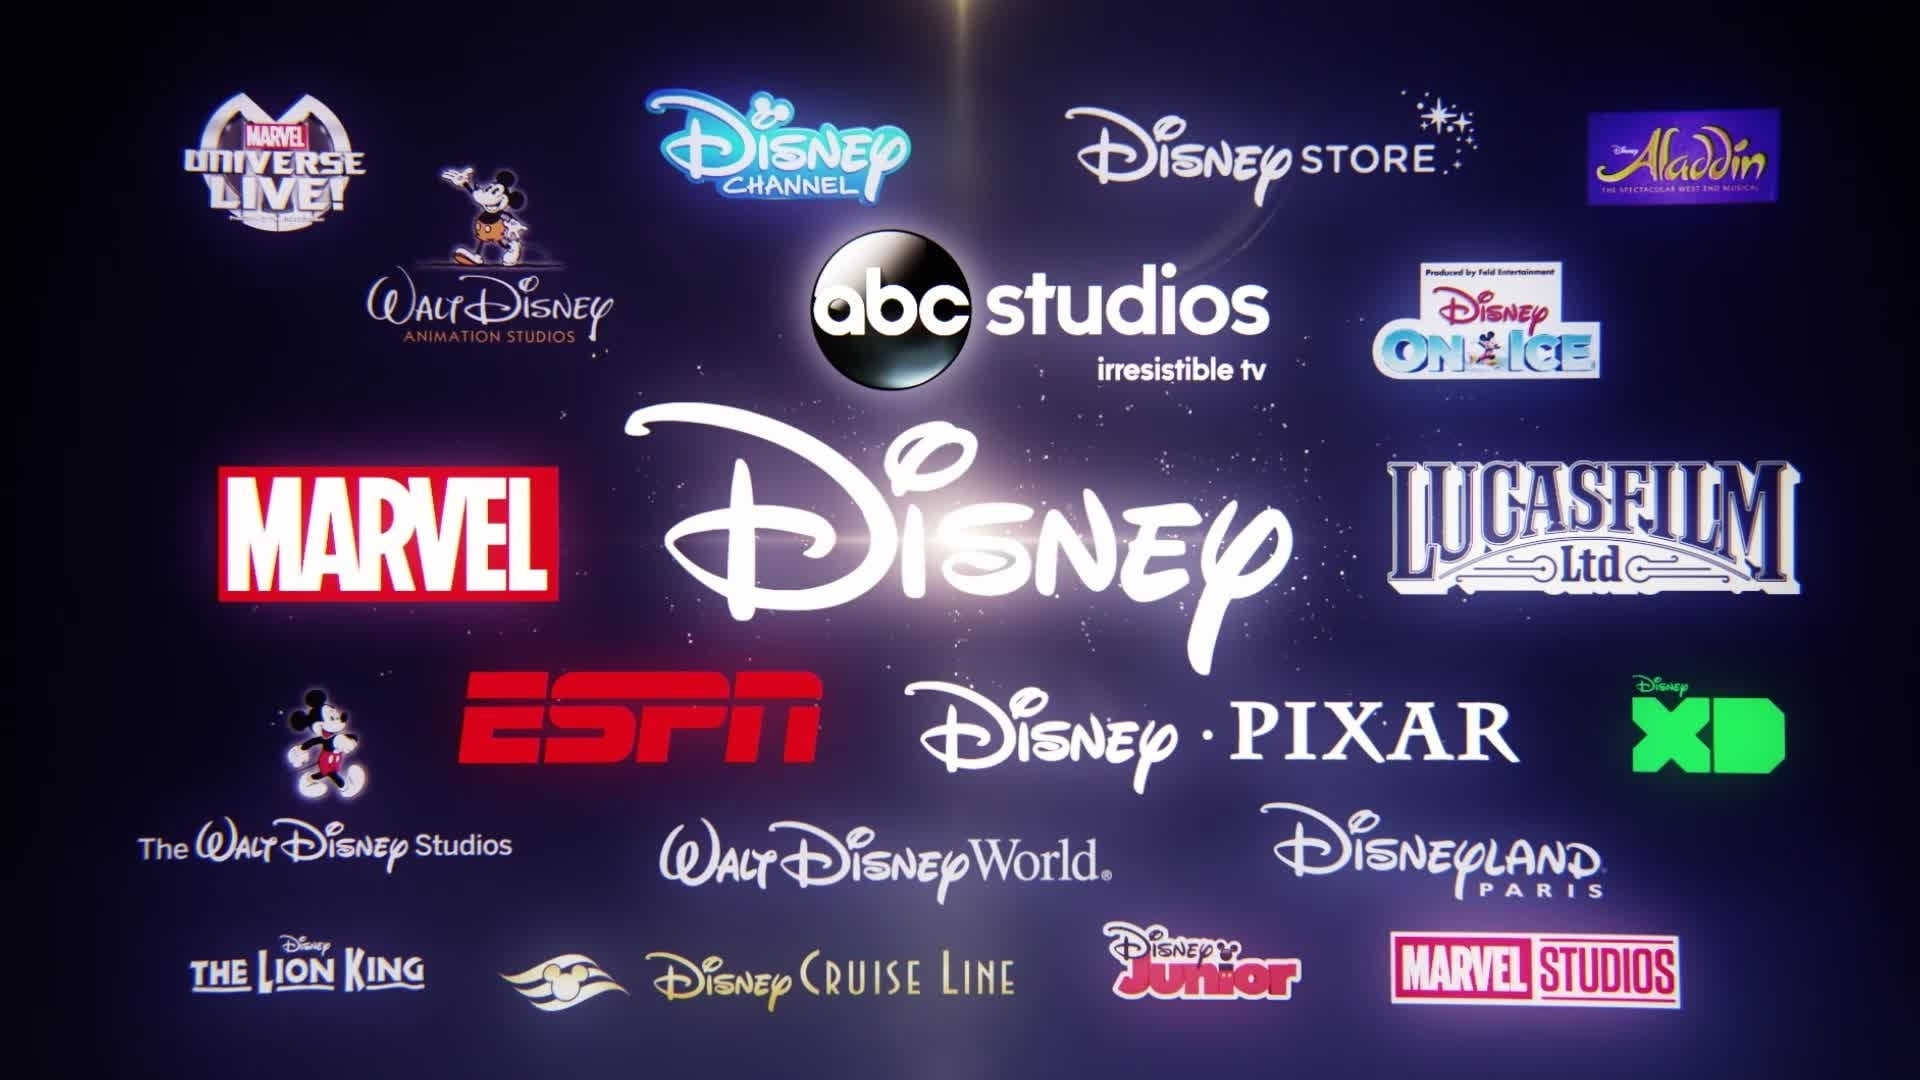 About Us - The Walt Disney Family of Companies Video (NL)